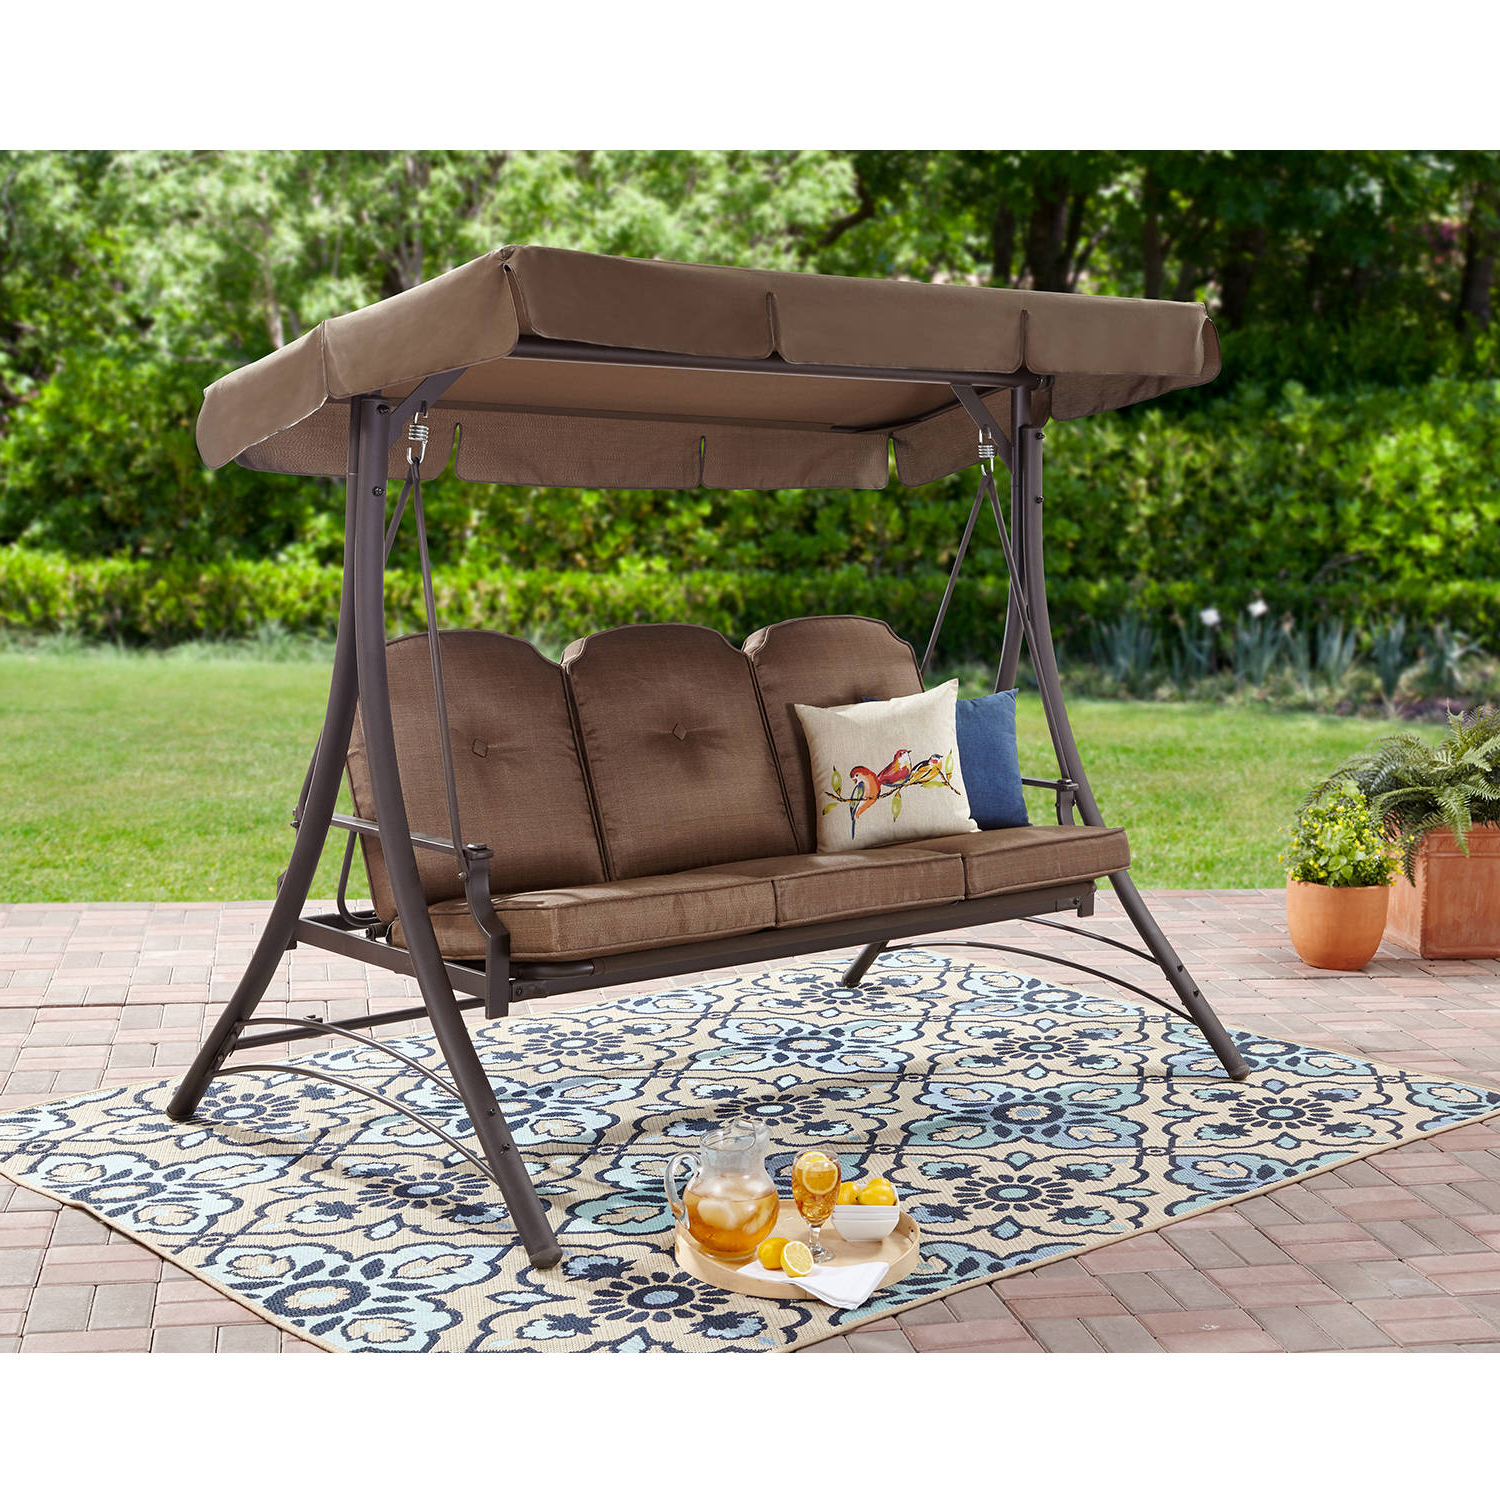 3 Person Red With Brown Powder Coated Frame Steel Outdoor Swings With Regard To Popular Mainstays Wentworth 3 Person Cushioned Canopy Porch Swing Bed – Walmart (View 4 of 25)